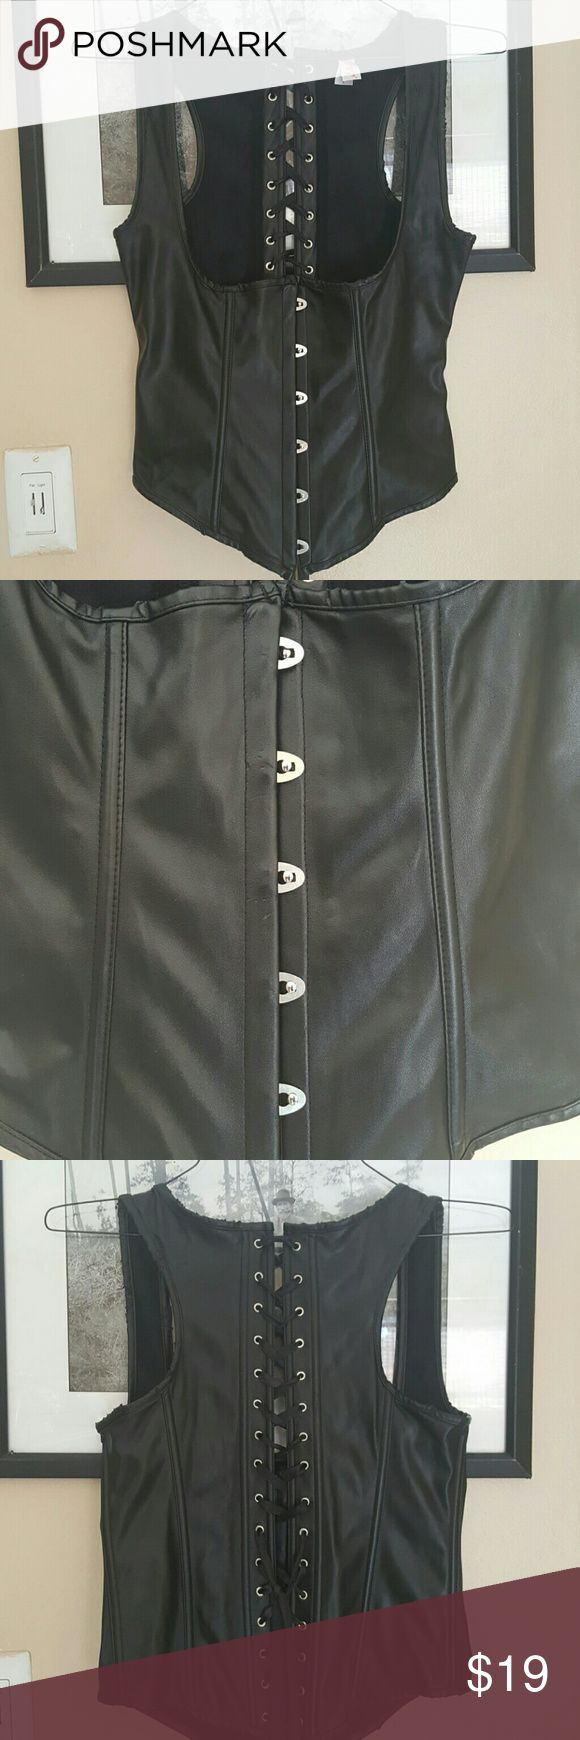 Vegan leather corset Vegan leather corset hooks in front  Laces on back Worn once Tops